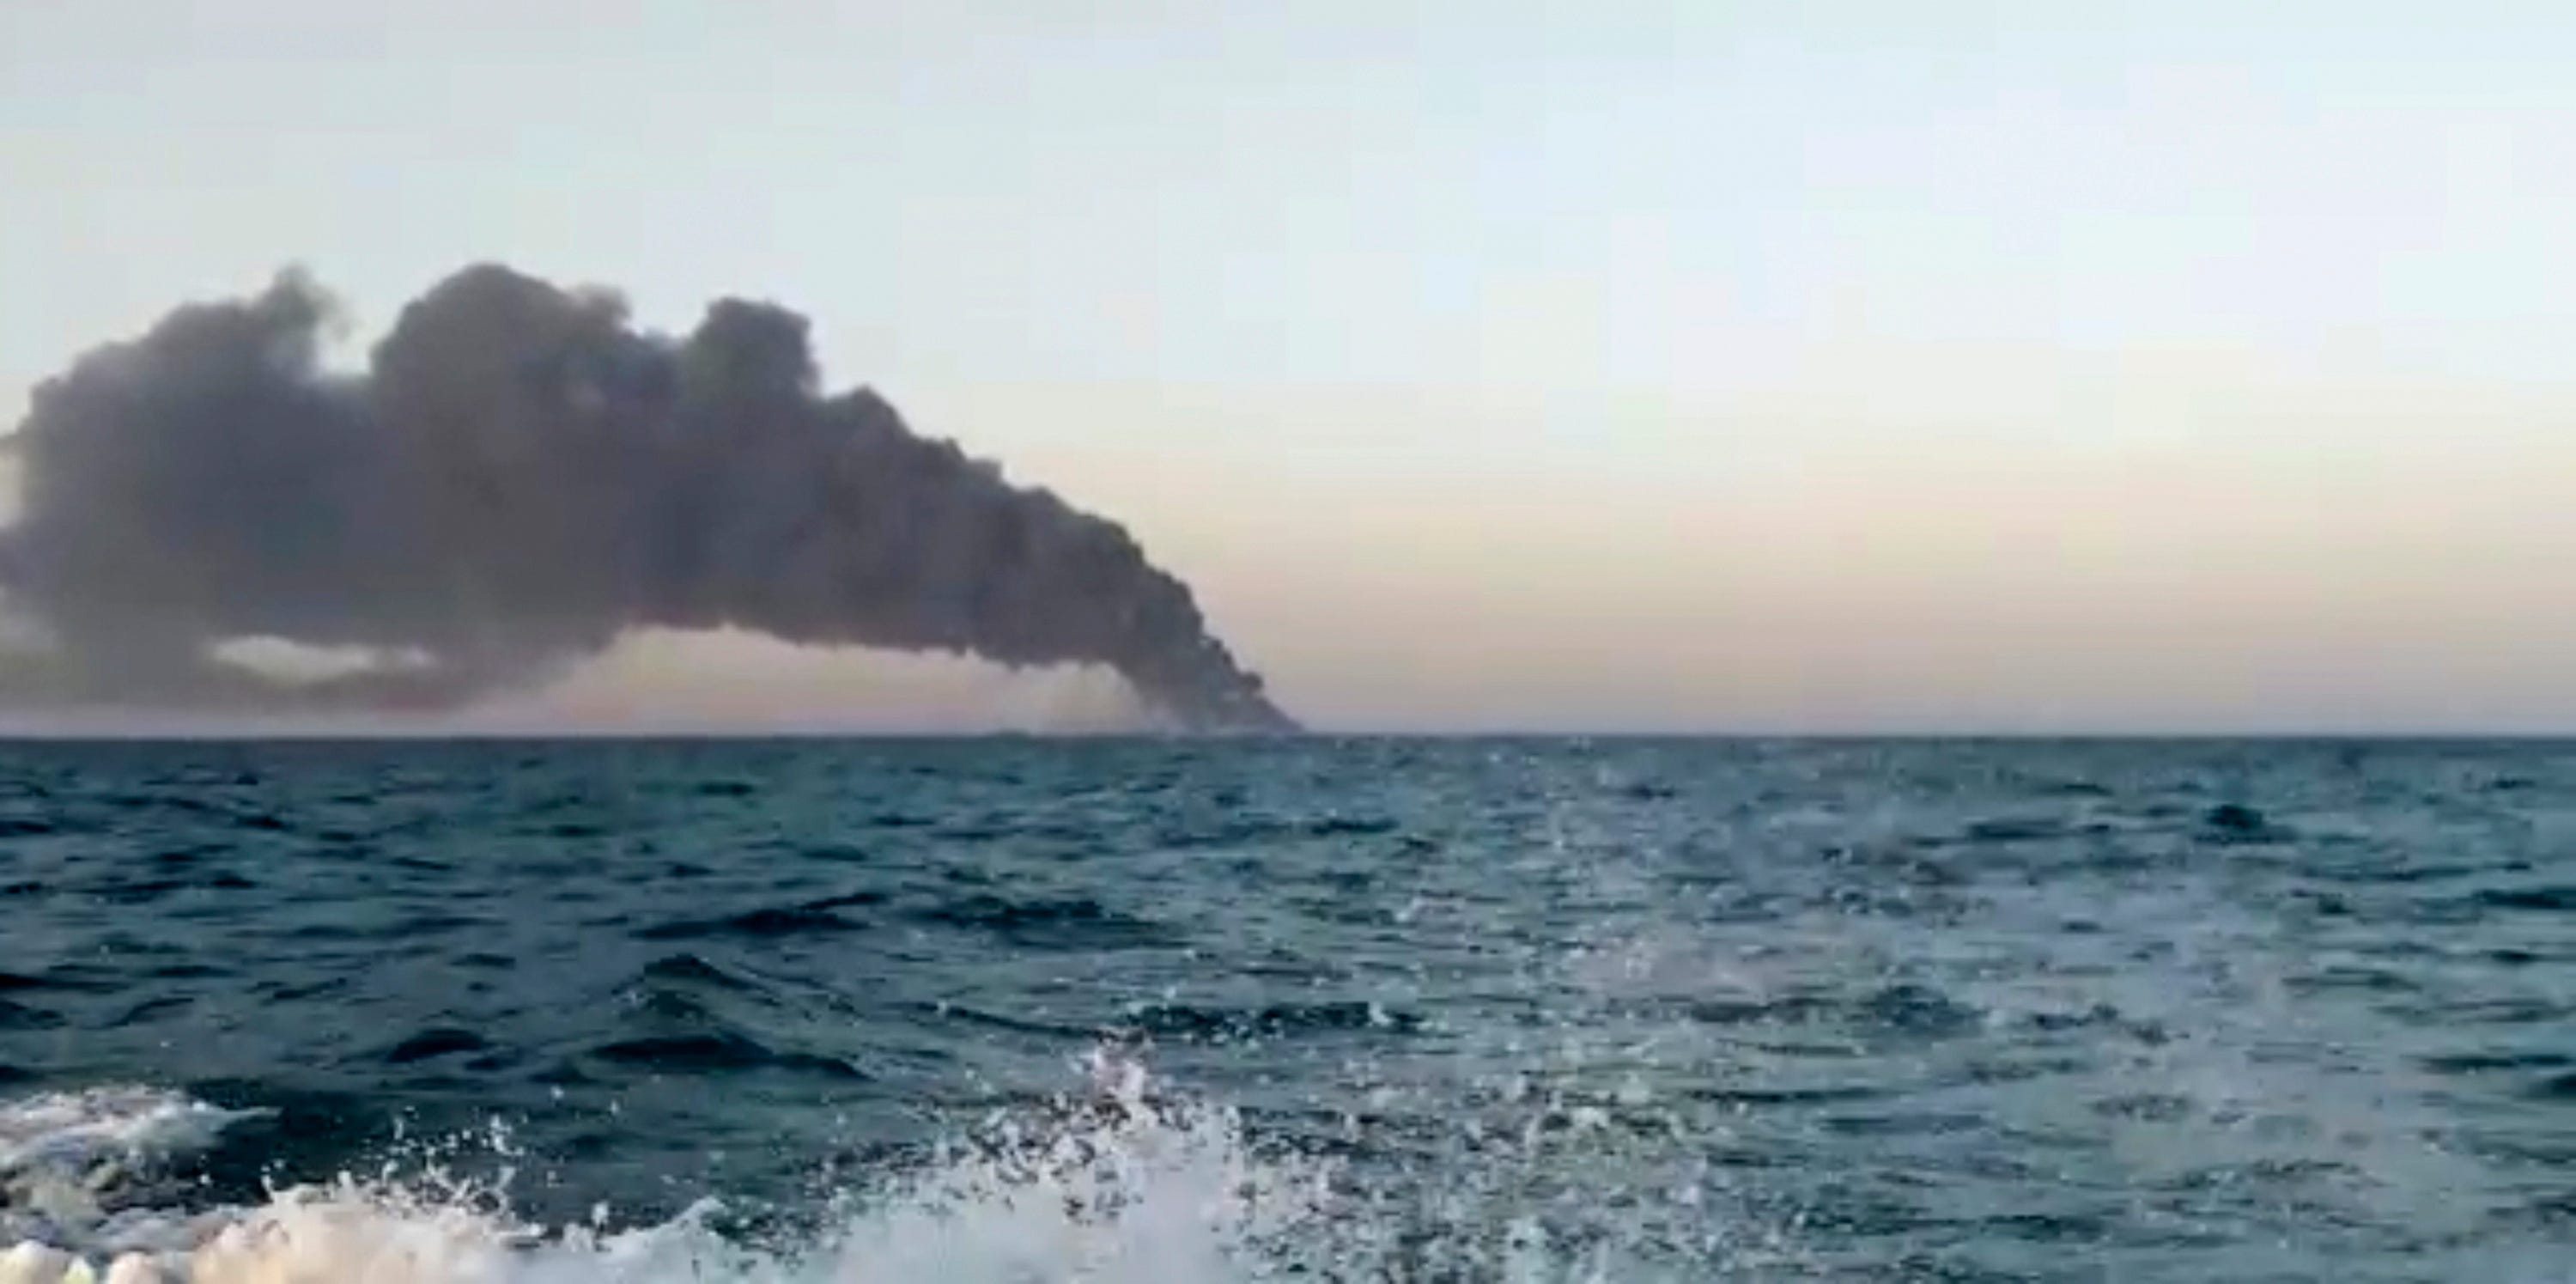 Iran's largest warship catches fire, sinks in Gulf of Oman 2